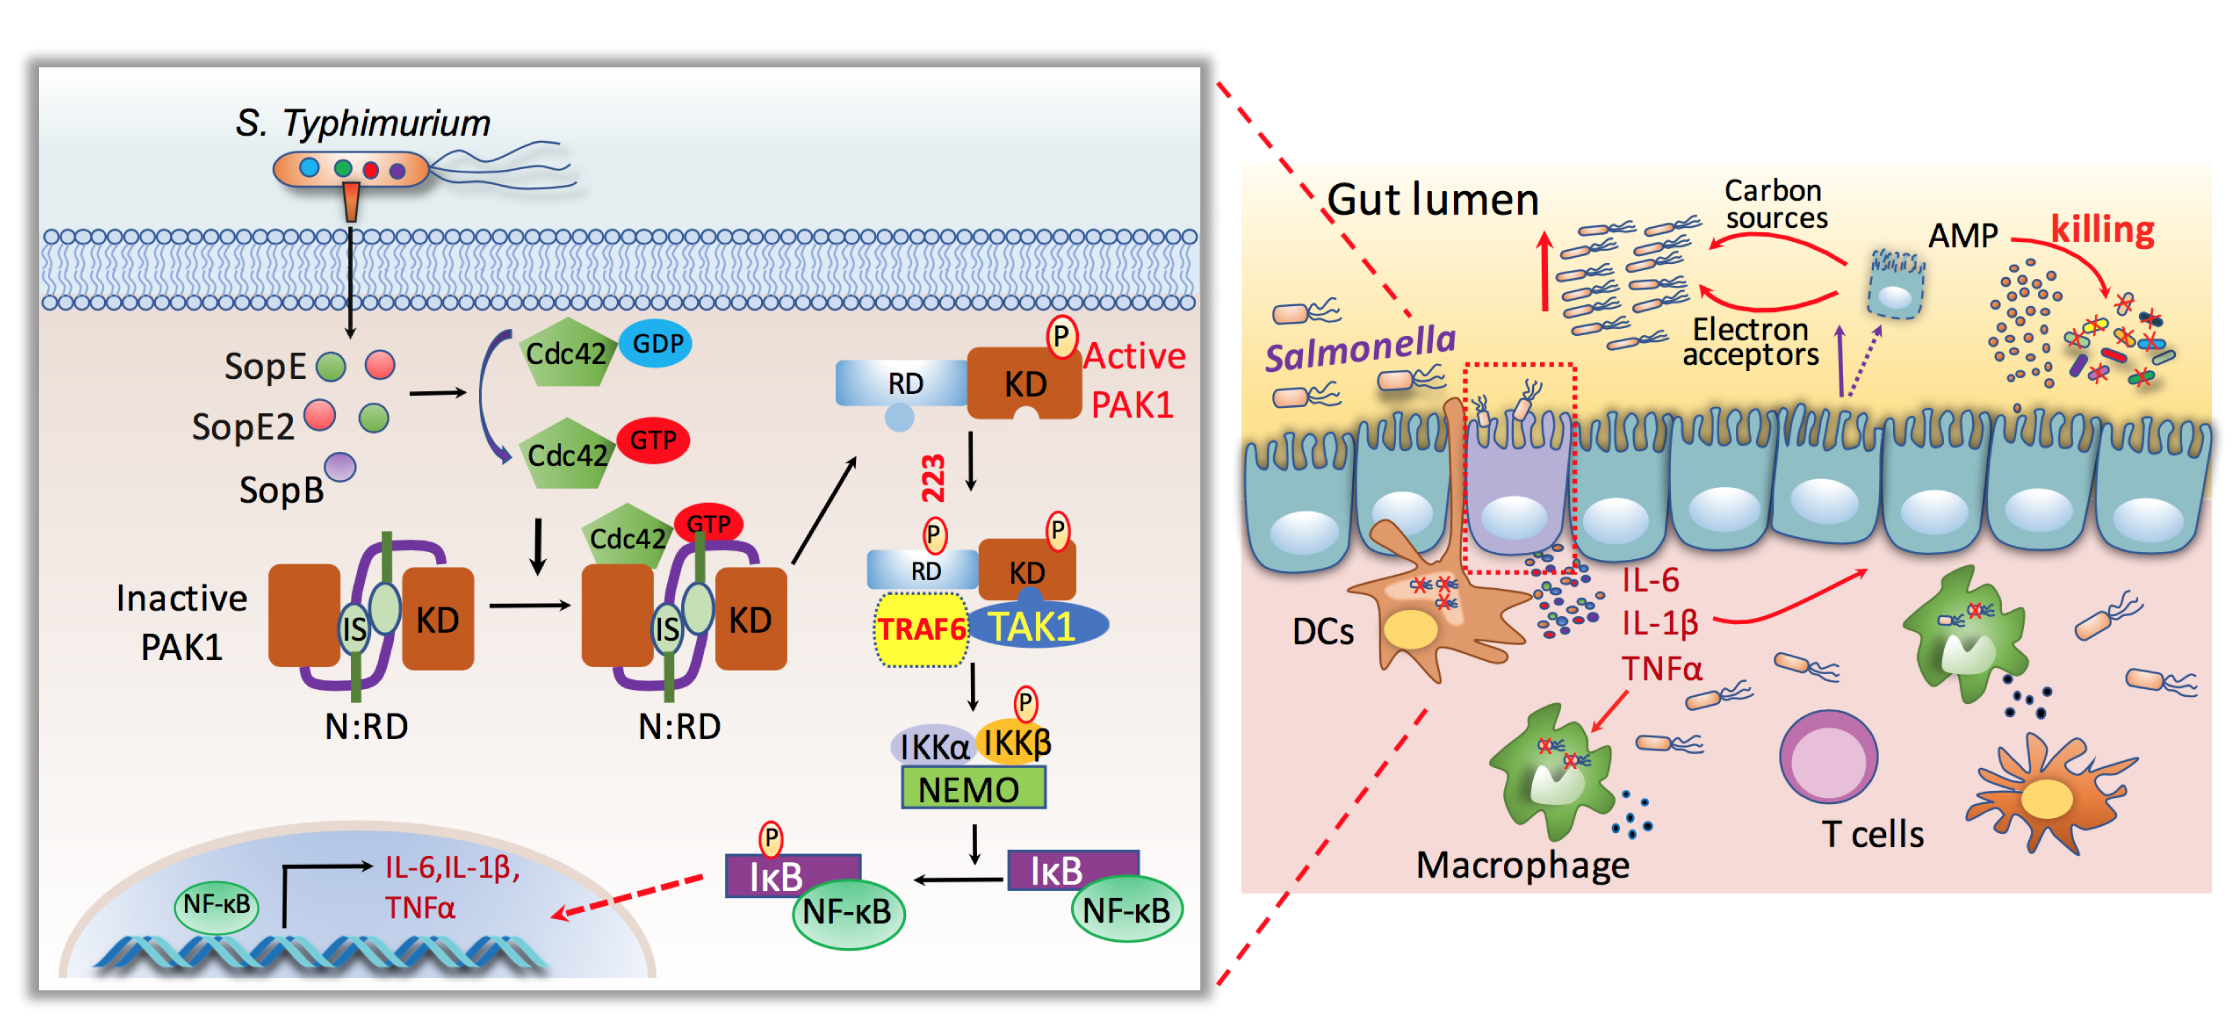 Fig. 2. Model for the interaction of  Salmonella  with the intestinal epithelium.  Through its type III secretion system encoded within its pathogenicity island 1,  Salmonella  delivers the effector proteins SopE, SopE2, and SopB, which in a functionally redundant manner activate Cdc42. Activation of Cdc42 leads to the formation of a PAK1/TRAF6/TAK1 complex, the phosphorylation of PAK1 at Ser223, and the subsequent activation of NF-κB and production of pro-inflammatory cytokines. The ensuing intestinal inflammation allows  Salmonella  to out-compete the resident microbiota and replicate within the lumen of the intestinal tract. At the same time, the inflammatory response controls the spread of  Salmonella  to deeper tissues.